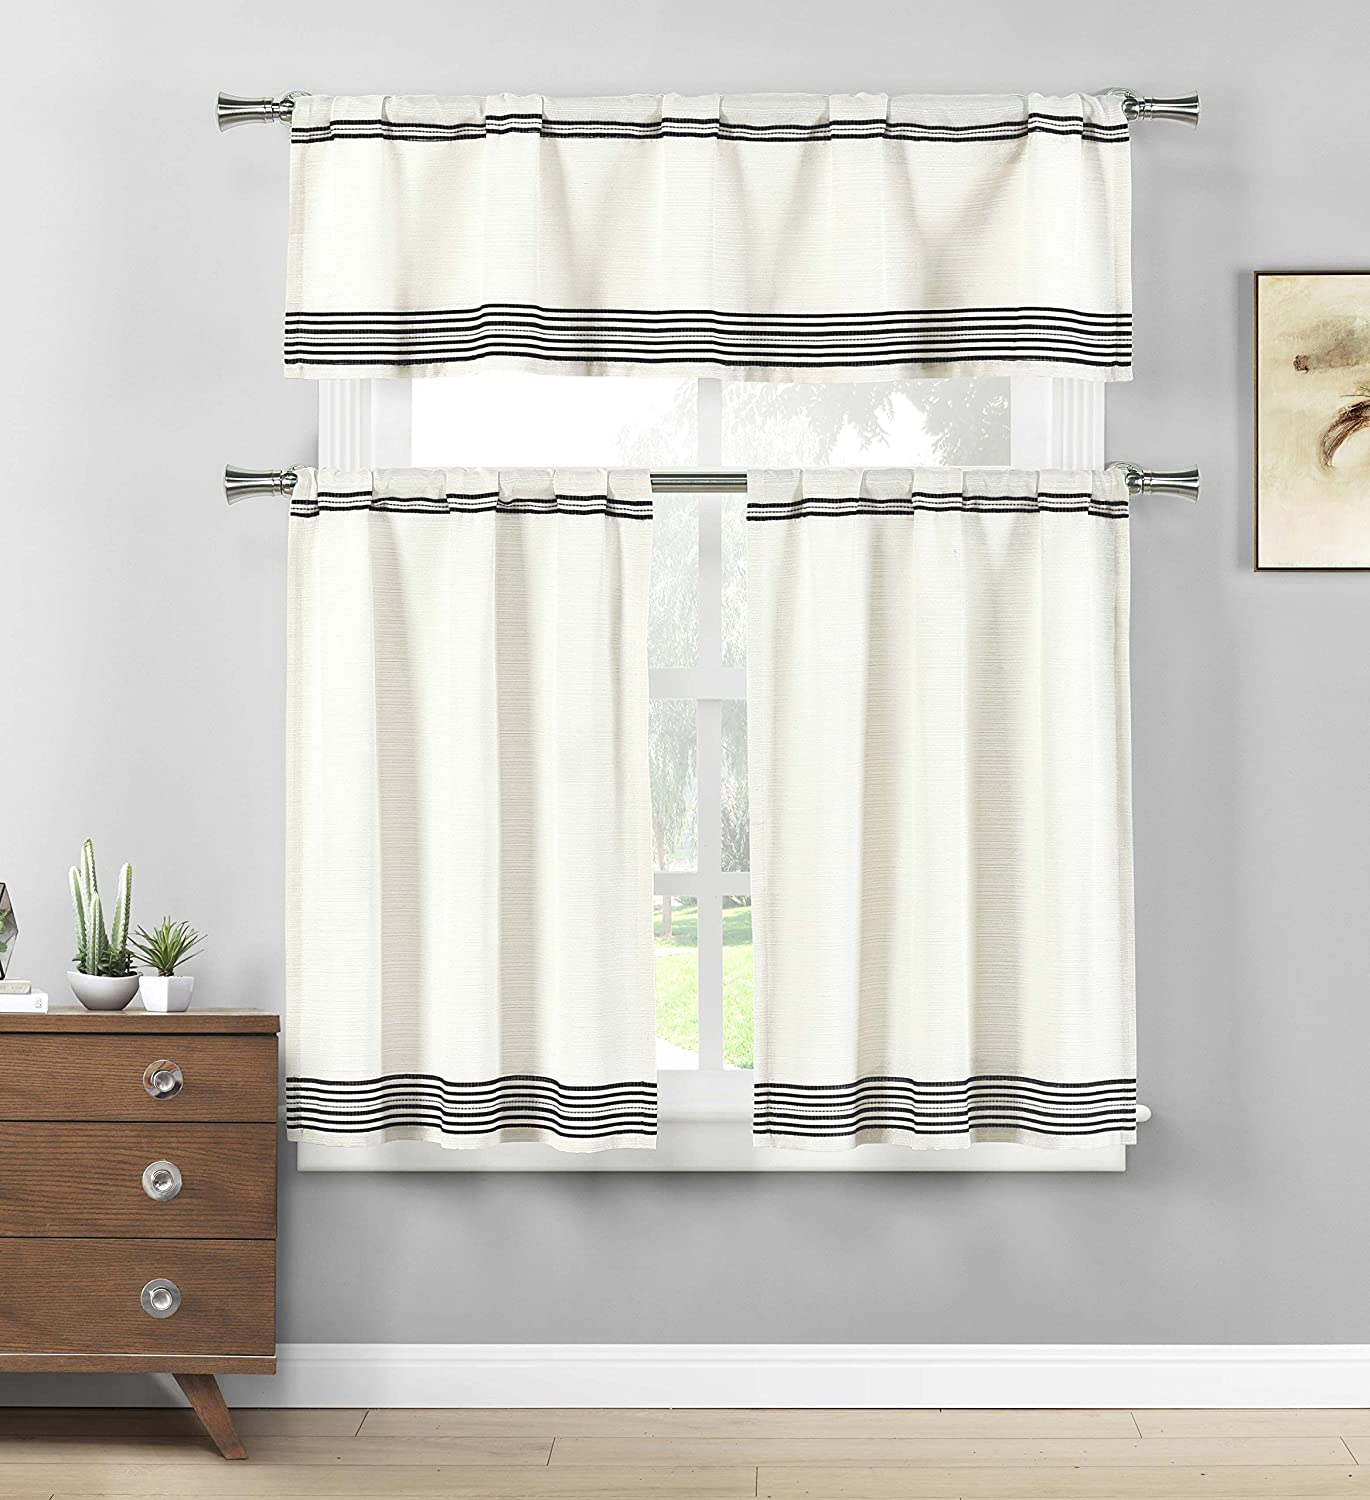 Home Maison- Wilmont Striped Cotton Blend Textured Kitchen Tier & Valance Set | Small Window Curtain for Cafe, Bath, Laundry, Bedroom - (Black)